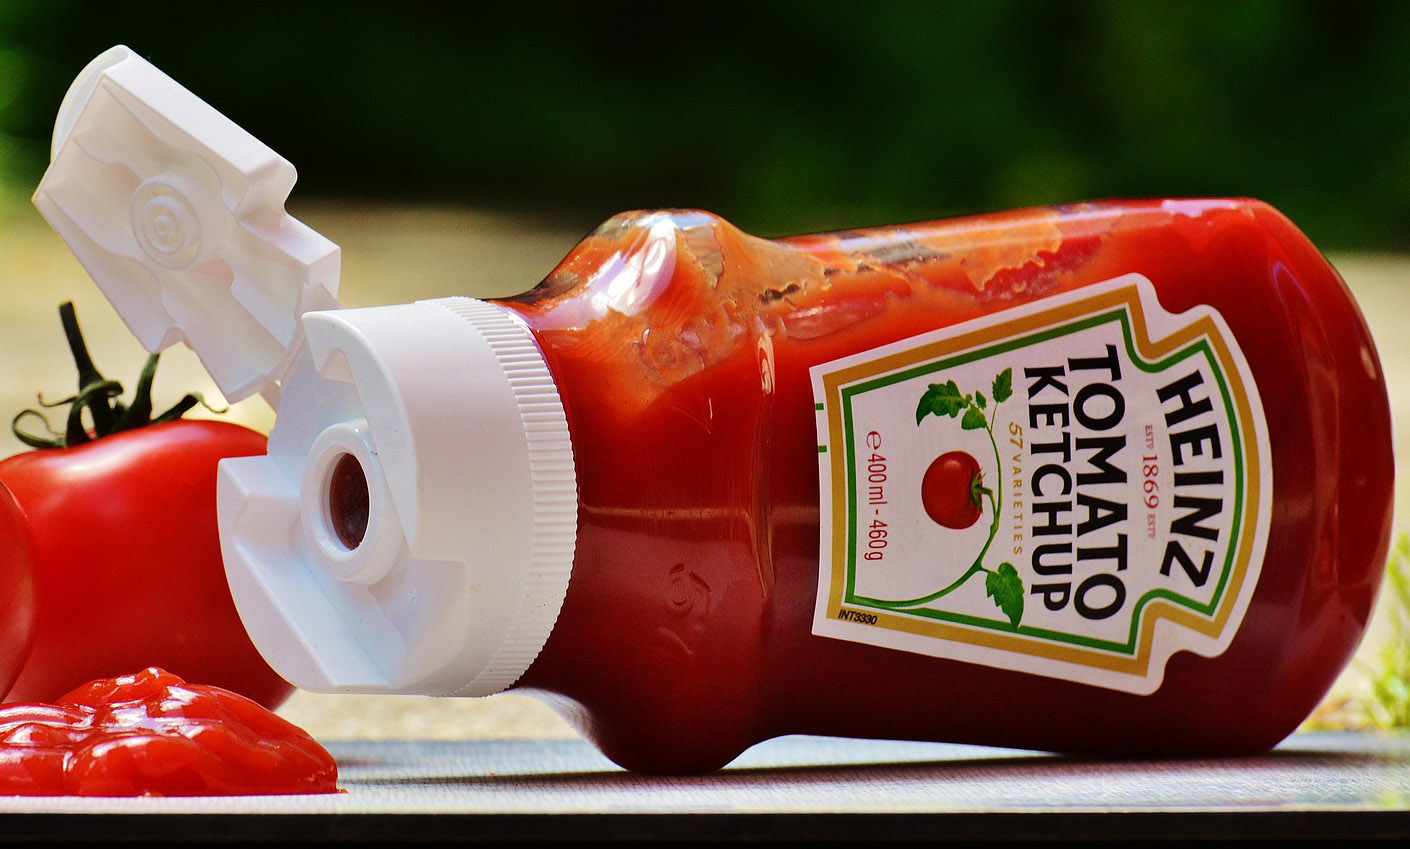 Unilever and Kraft Heinz: A clash of (corporate) cultures